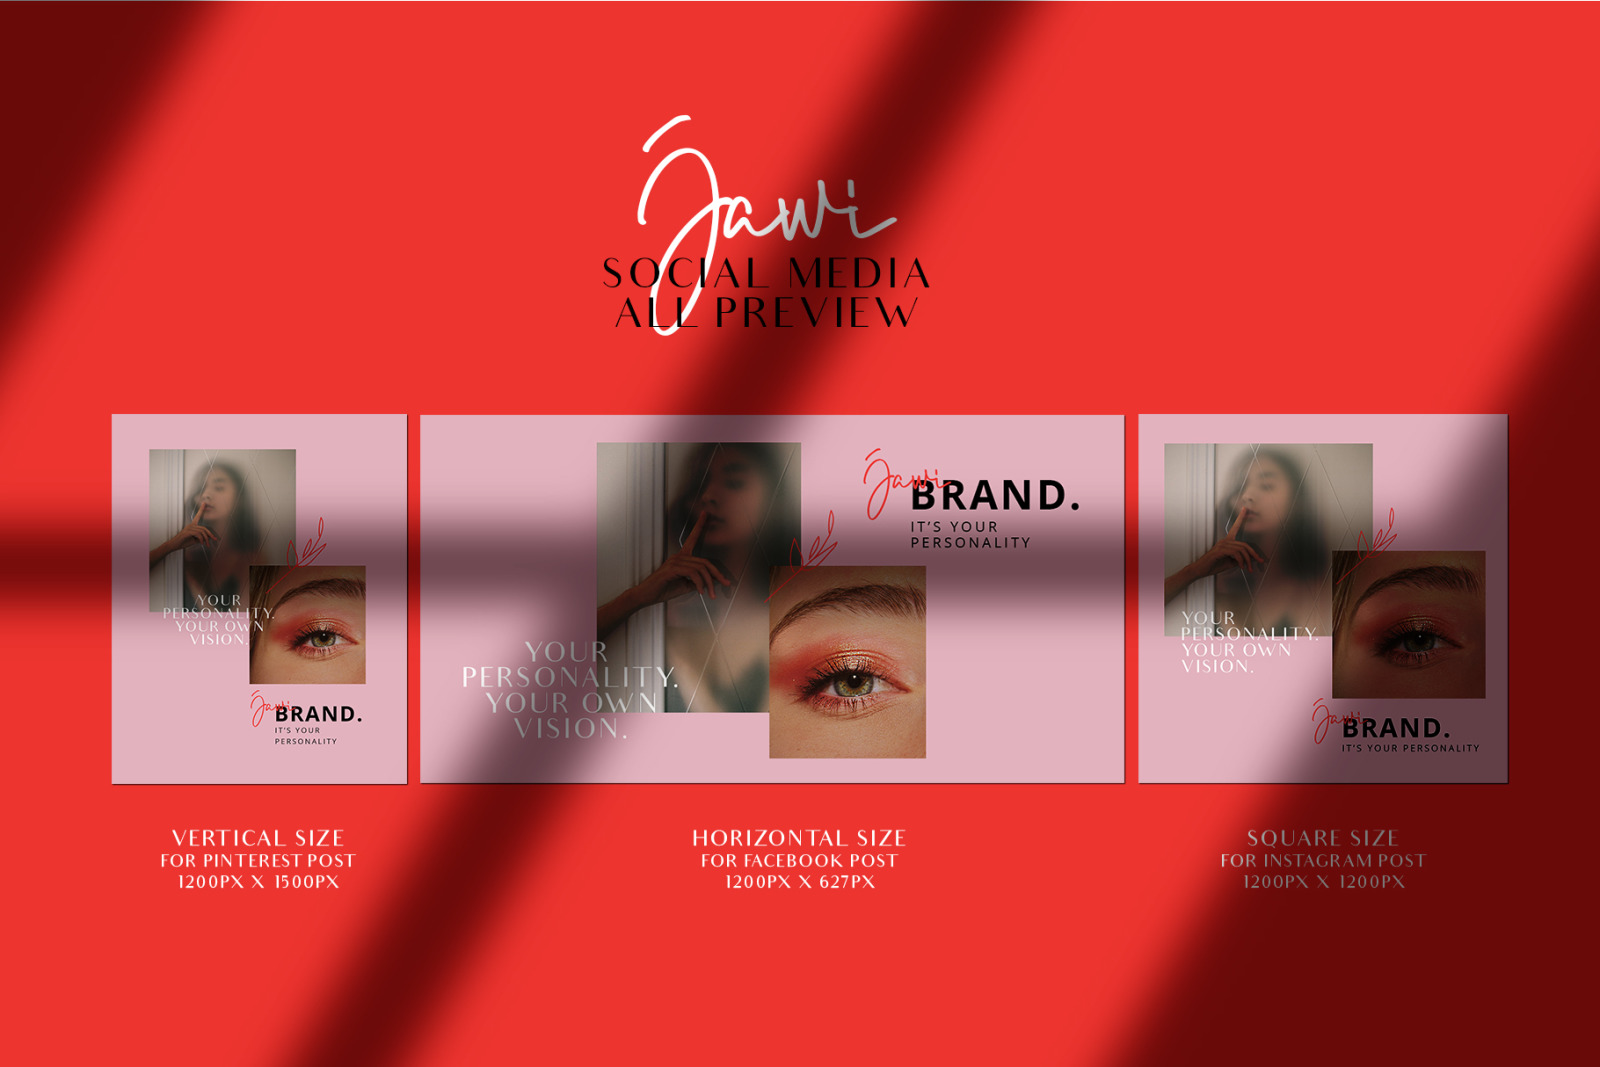 JAWI-Social Media Brand Templates